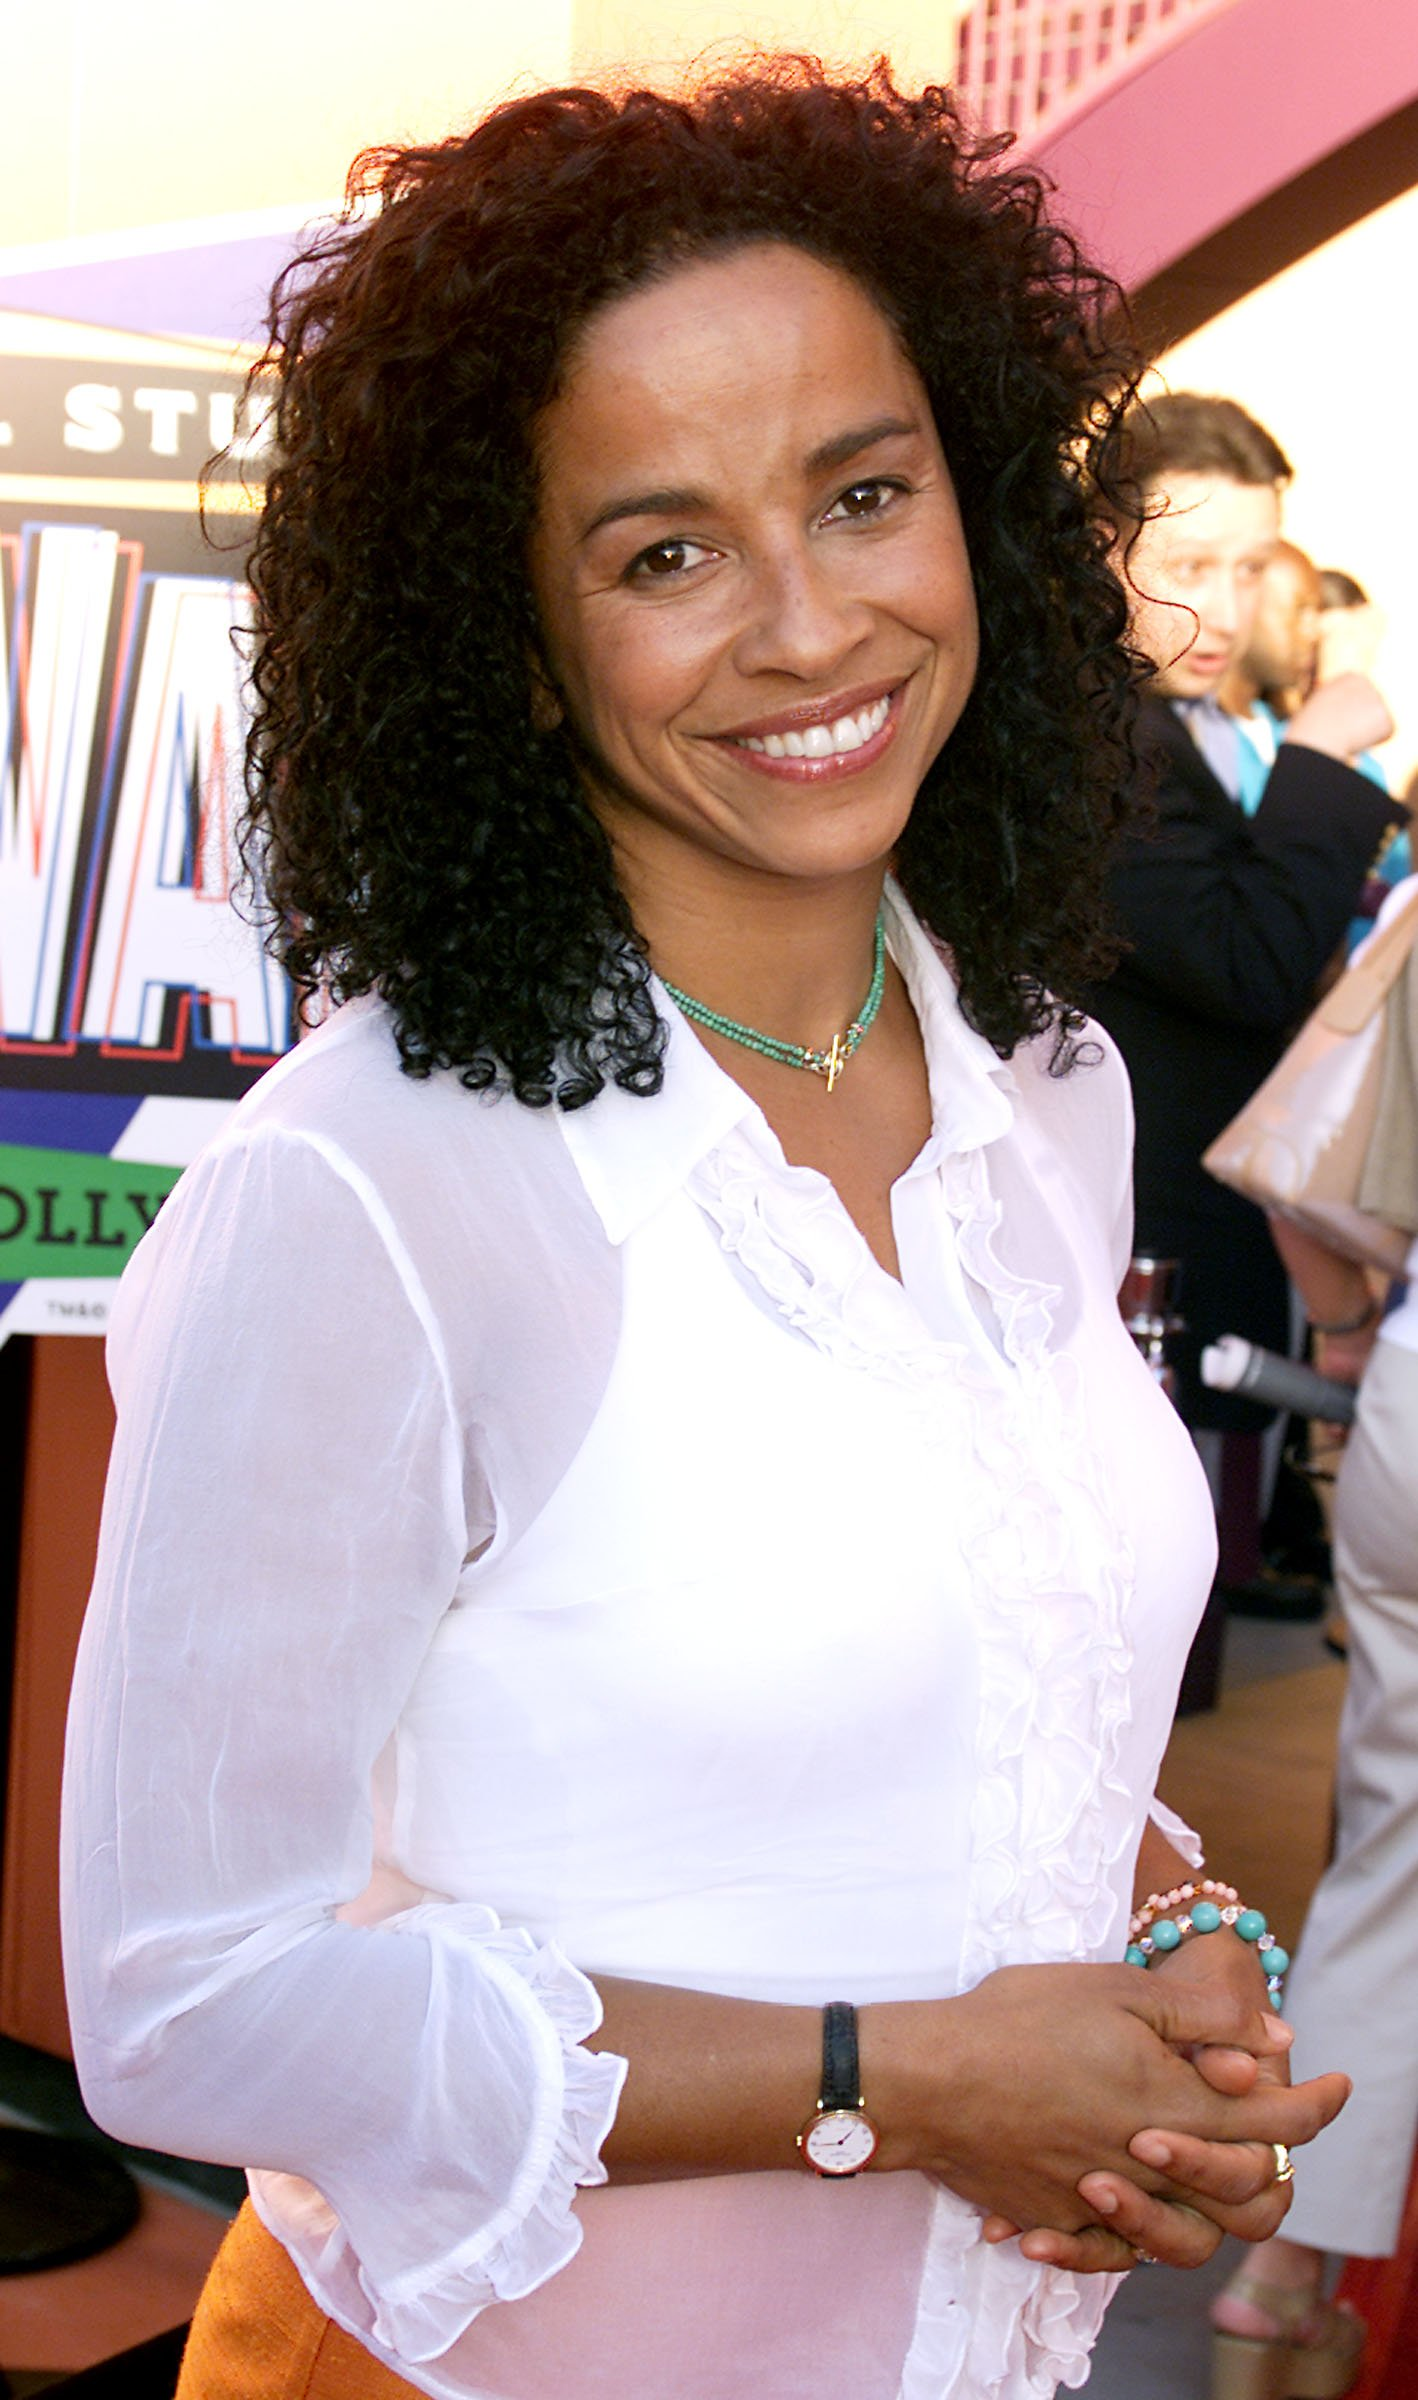 Rae Dawn Chong in Los Angeles, California on July 19, 2000 | Source: Getty Images